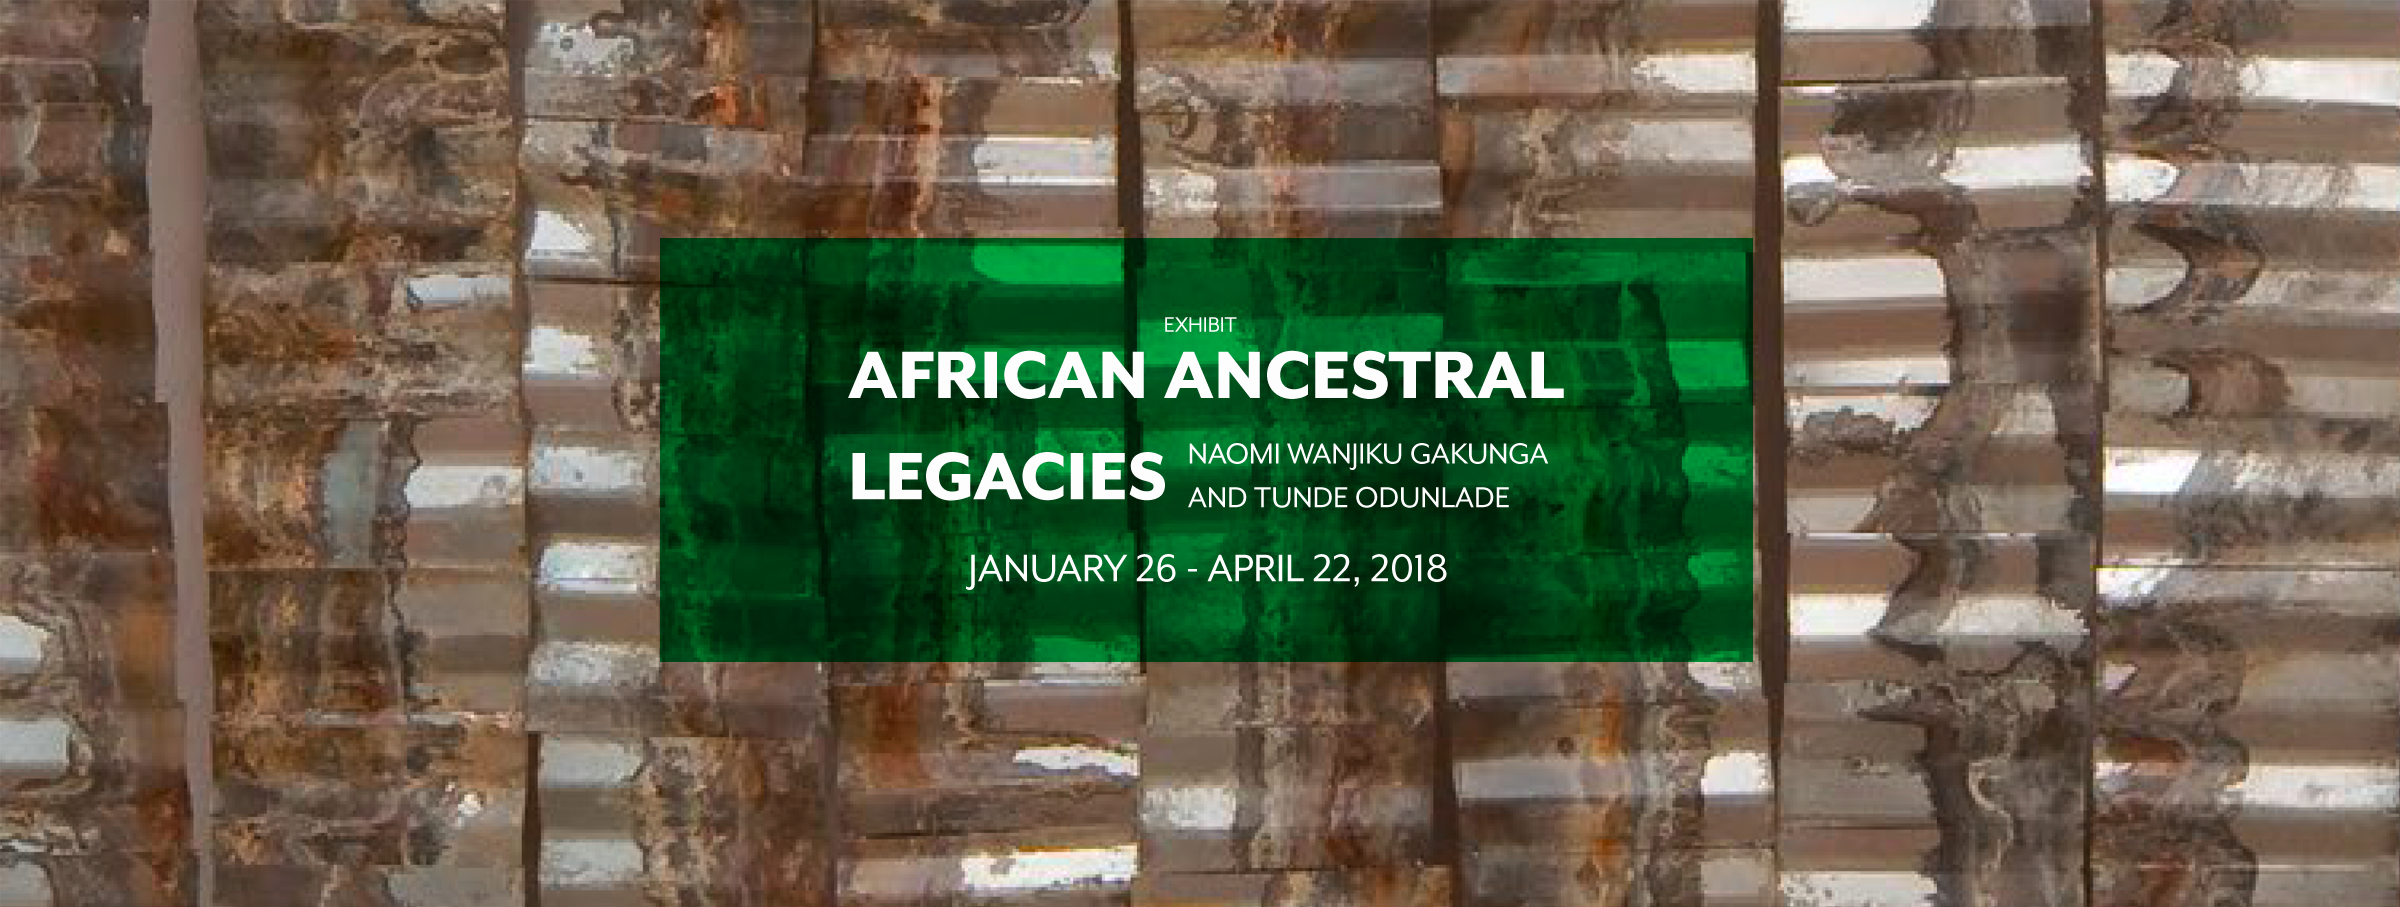 Geometric Art Exhibits in Dallas: African Ancestral Legacy Exhibit at the Museum of Geometric and MADI Art